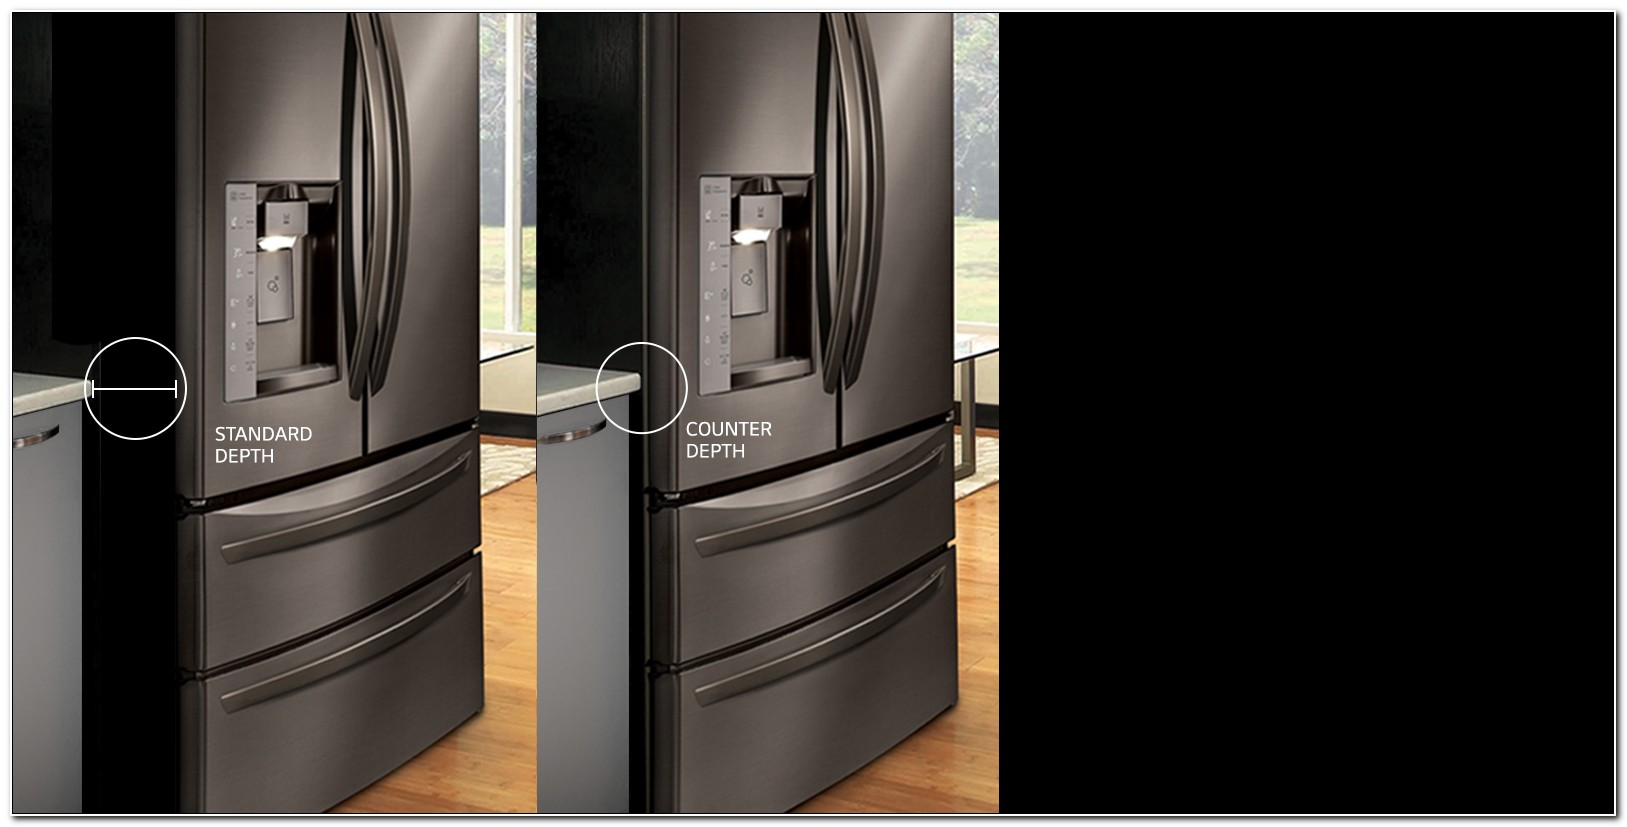 Lg Counter Depth Refrigerators 246